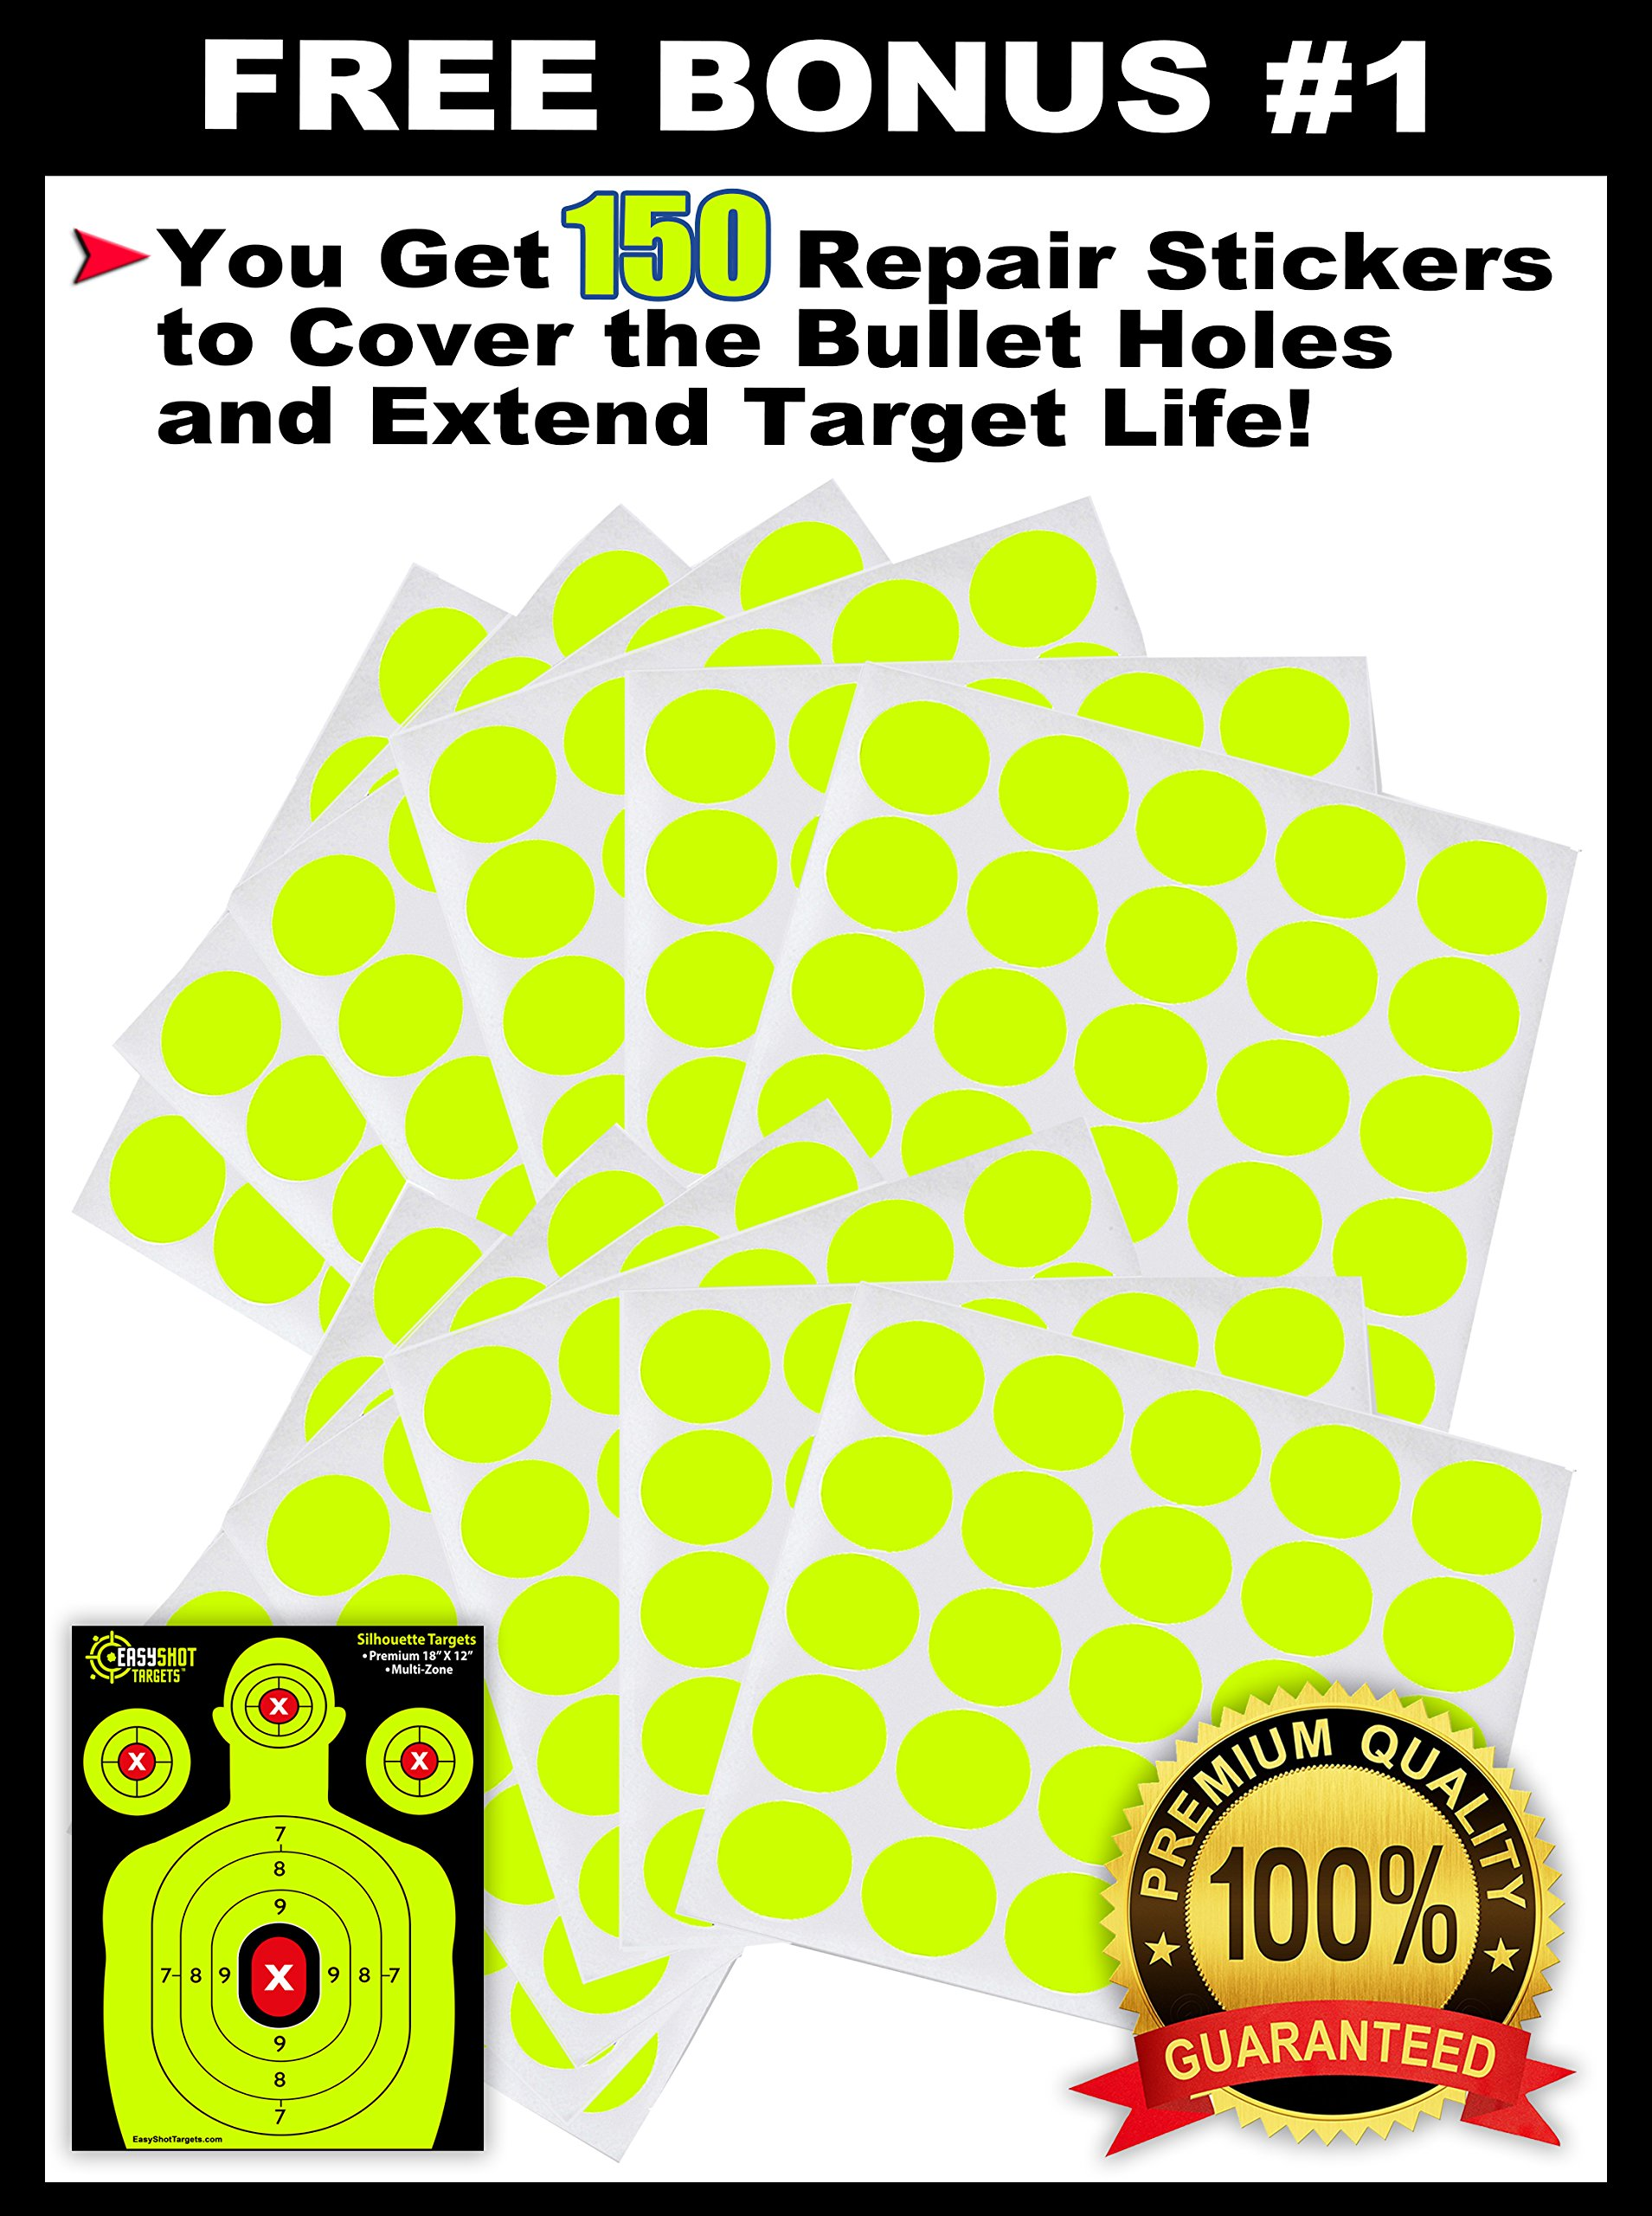 EASYSHOT Shooting Targets 18 X 12 inch. Shots are Easy to See with Our High-Vis Neon Yellow & Red Colors. Thick Silhouette Paper Sheets for Pistols, Rifles, BB Guns, Airsoft, Pellet Guns & More. by EasyShot Targets (Image #6)